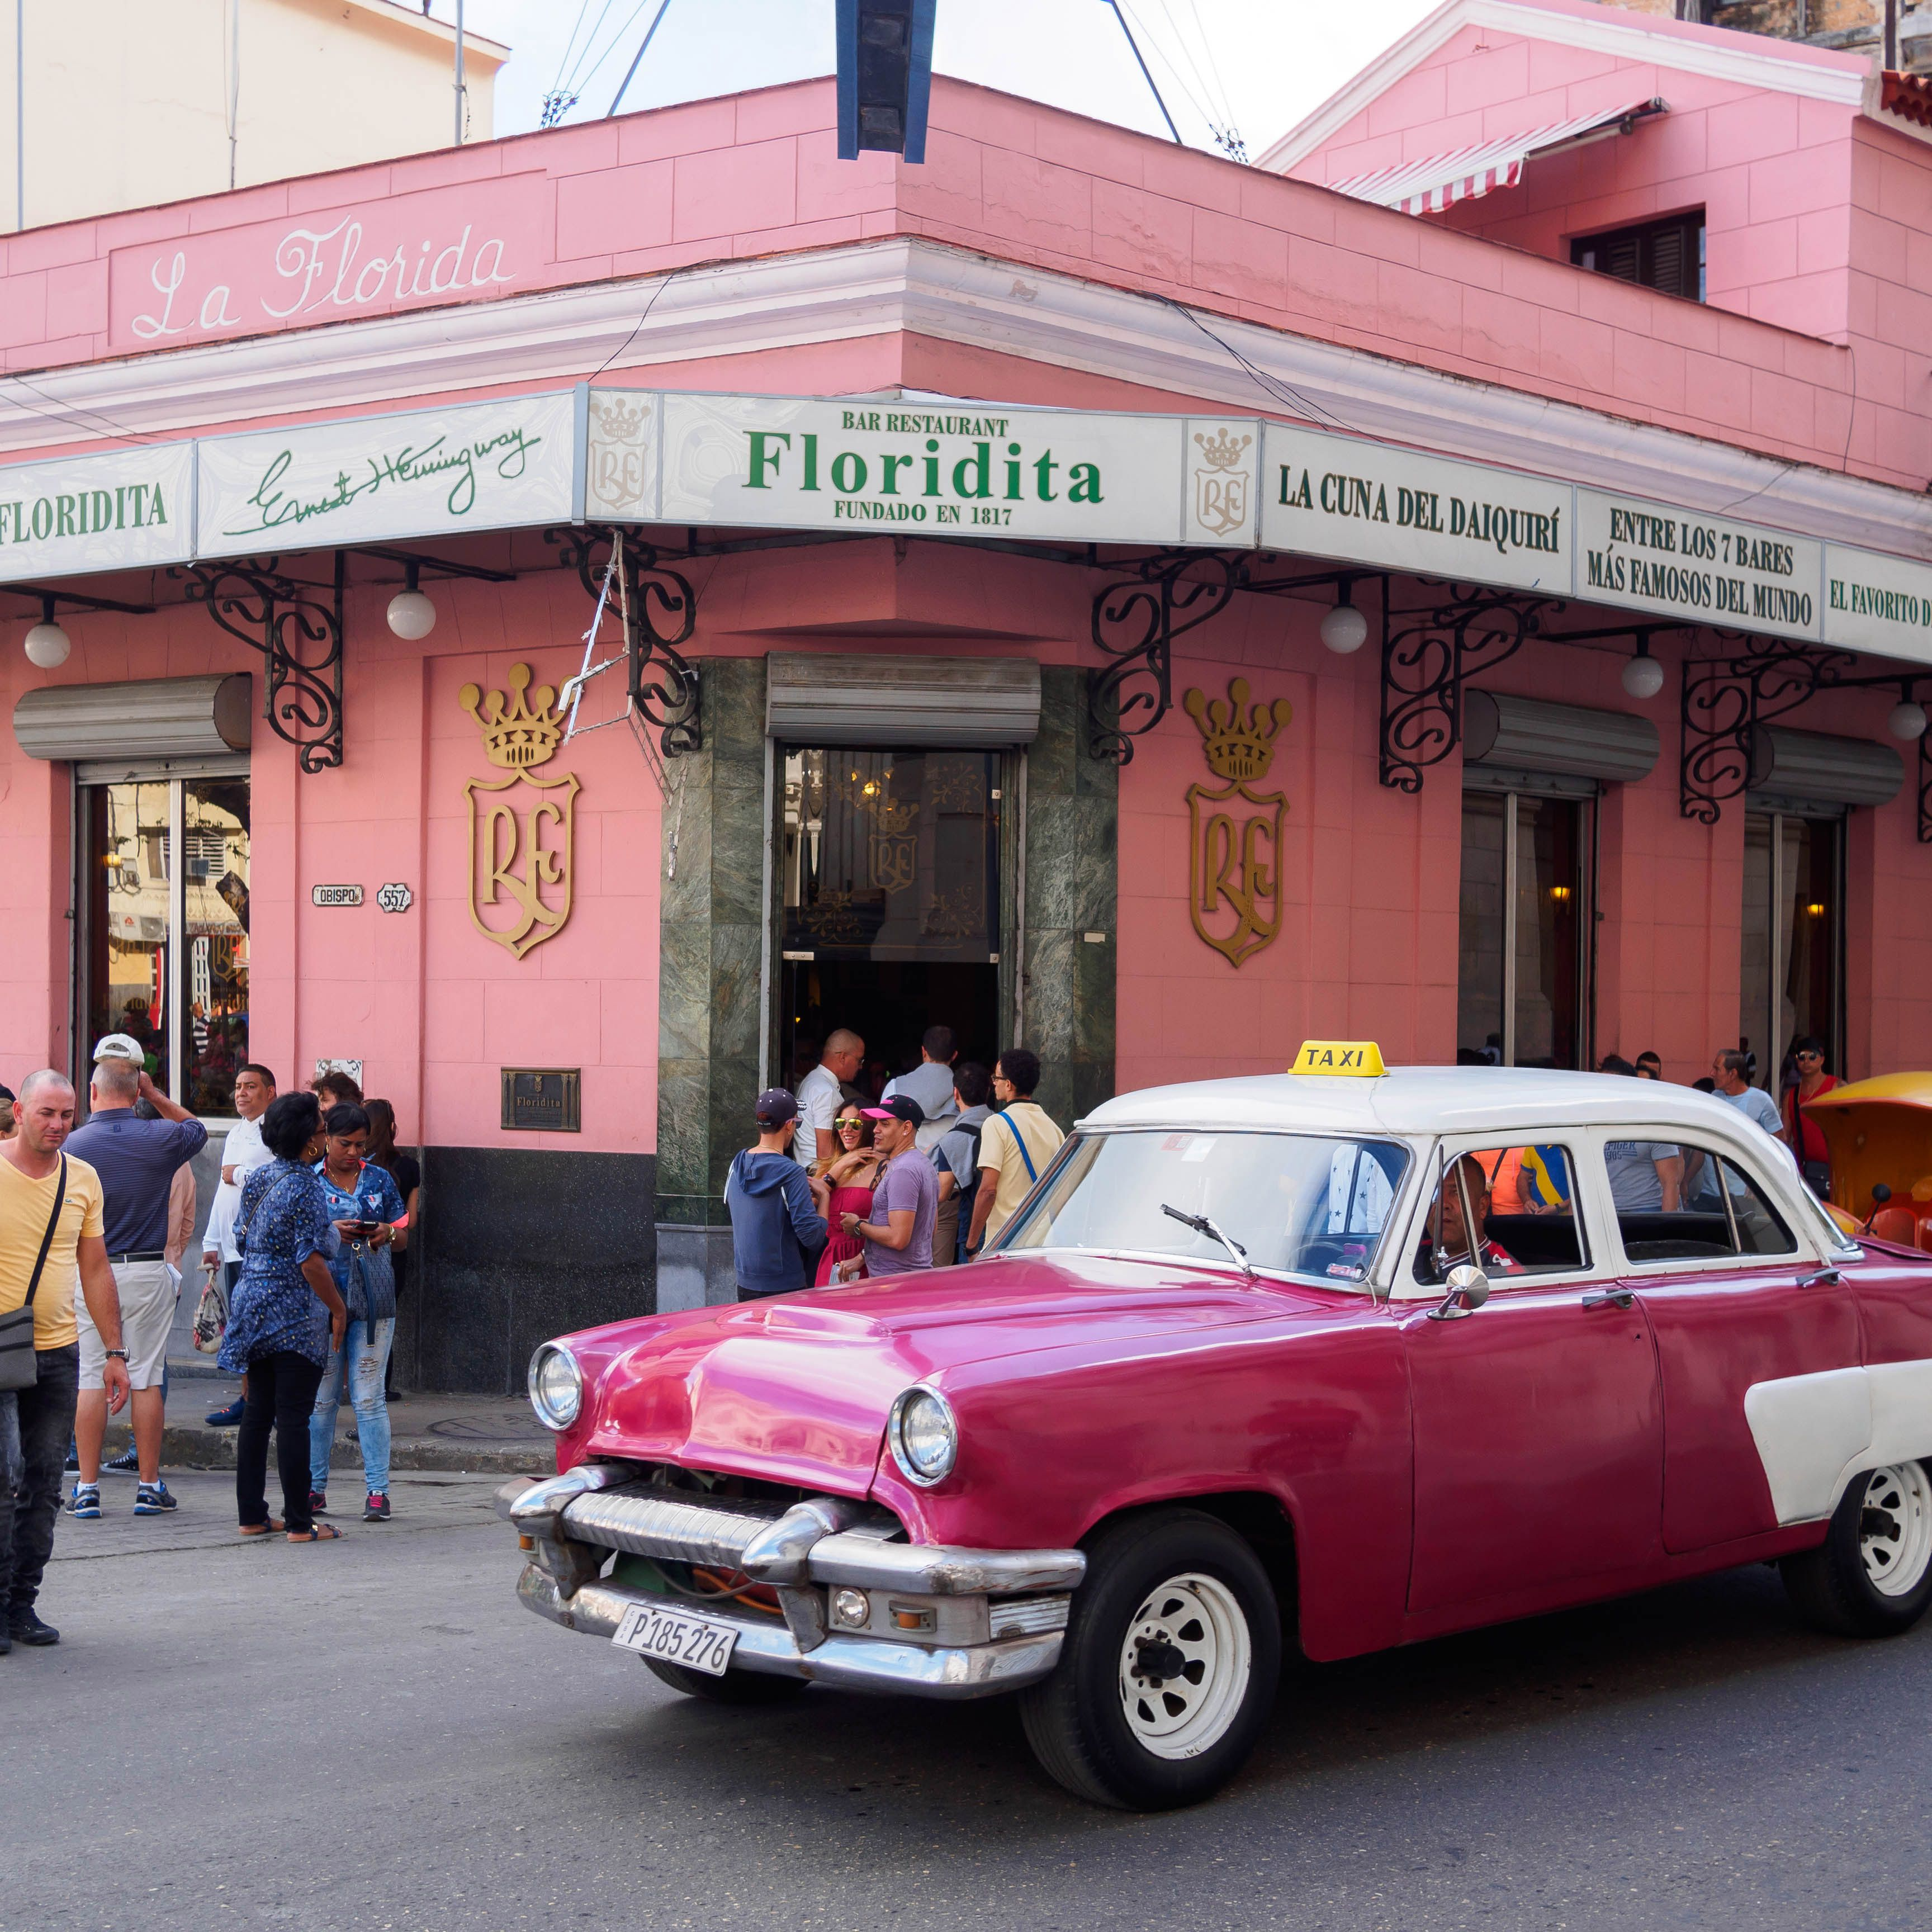 Nightlife in Havana: Where to Find the City's Best Bars, Clubs & More